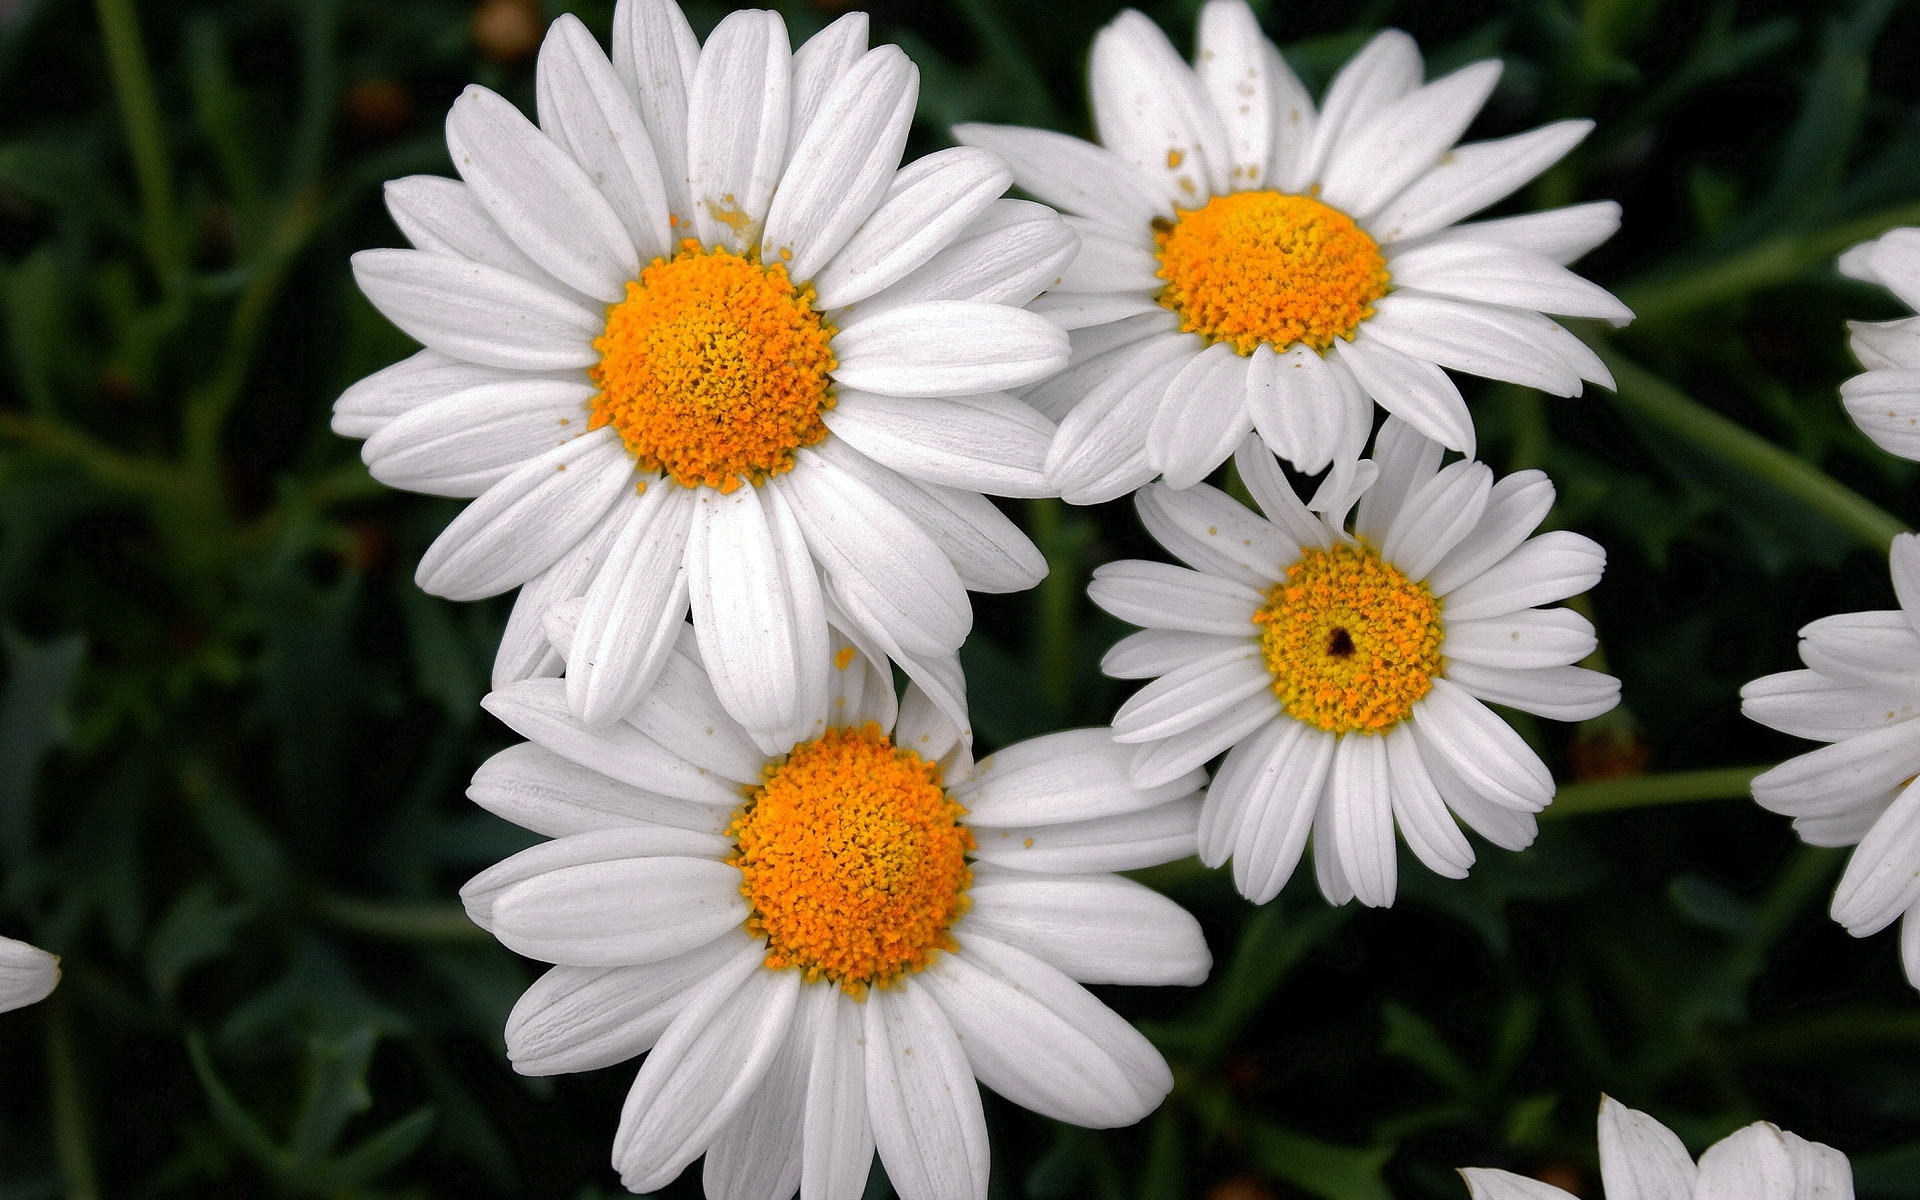 42445 download wallpaper Plants, Flowers, Camomile screensavers and pictures for free